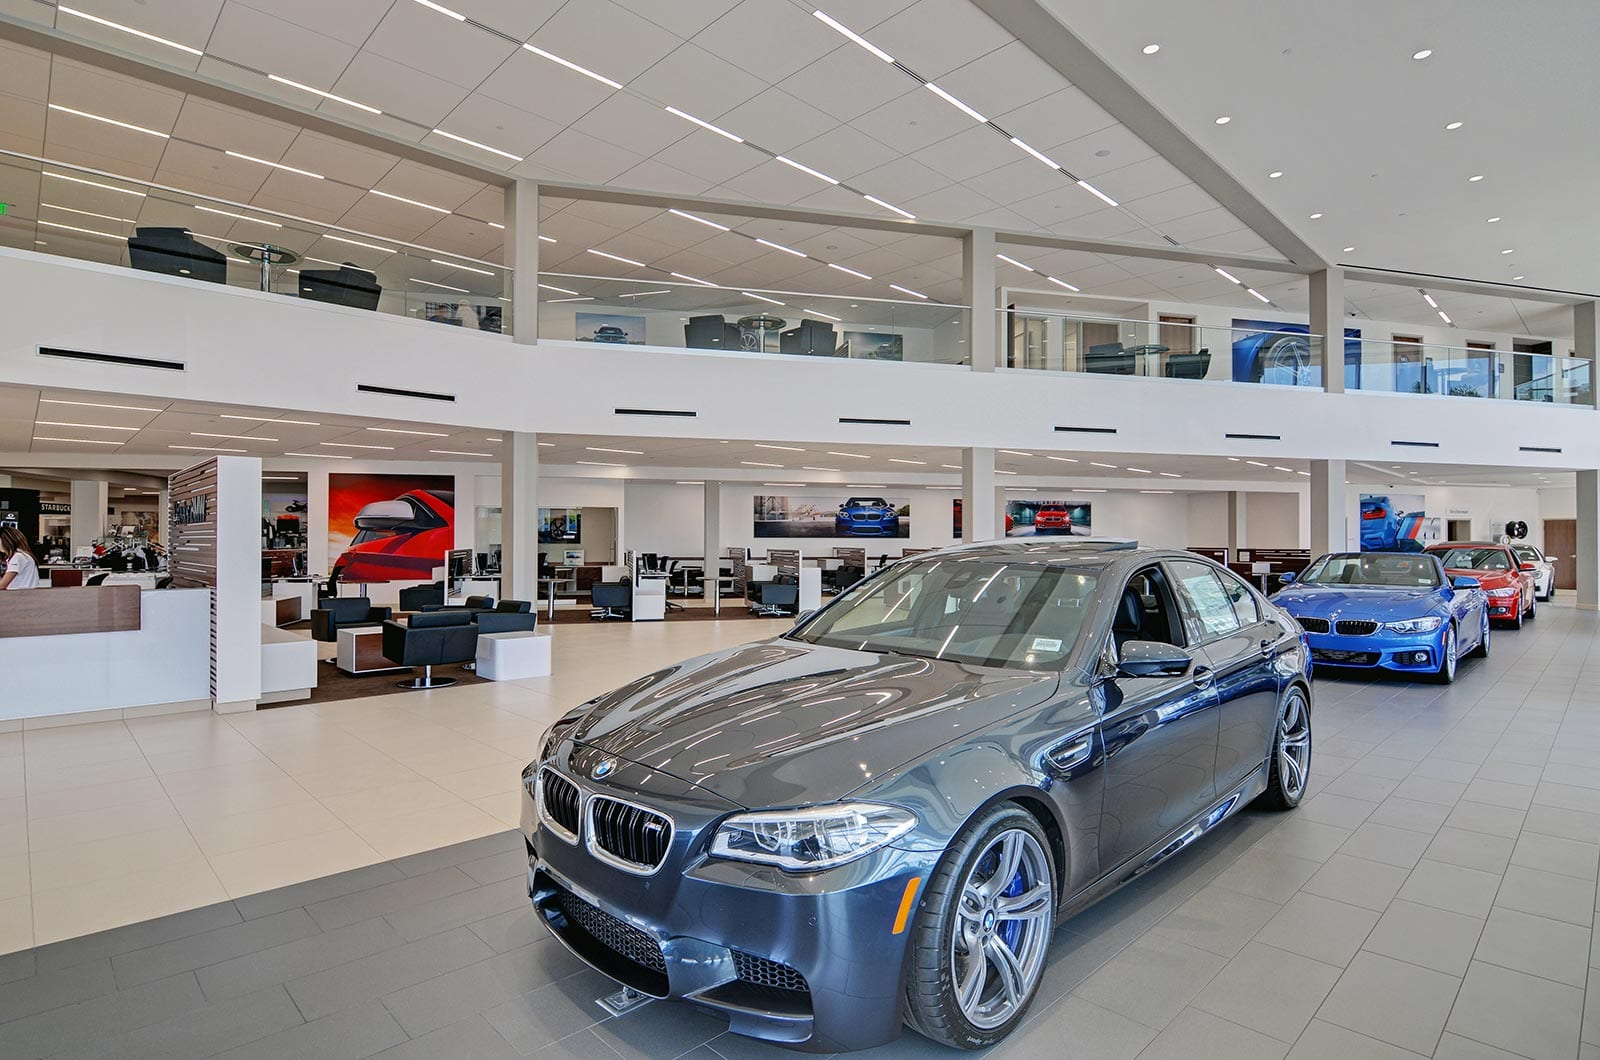 BMW-Auto-Dealership-Interior-Showroom-Architectural-Photography-Virtual-Tour-Aerial-Photography-Services